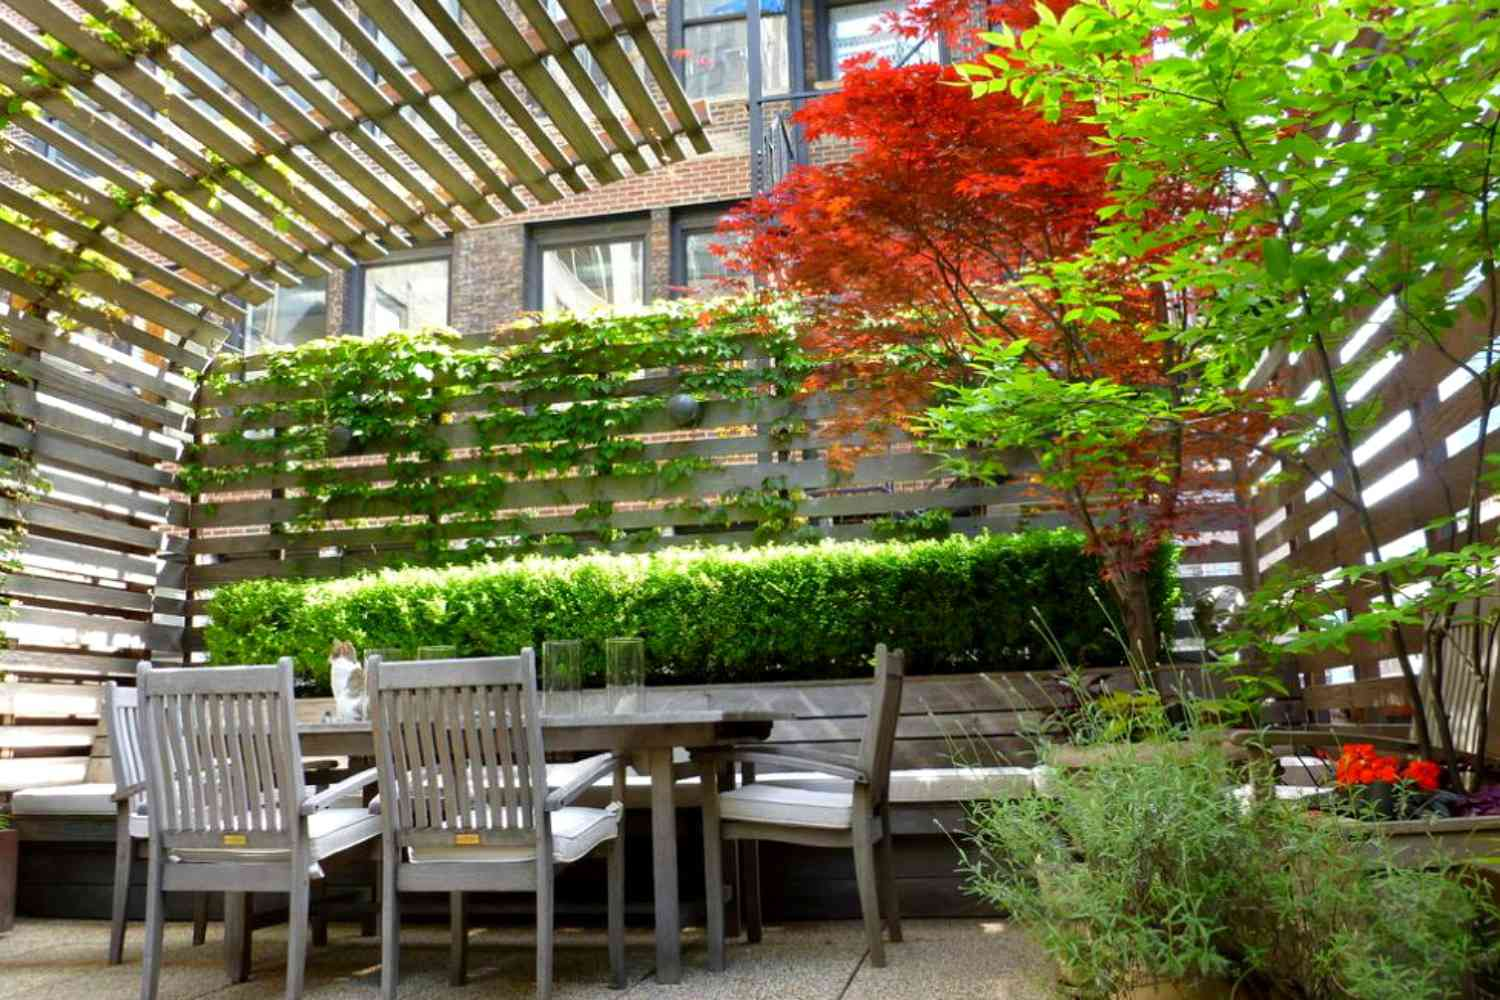 9 Landscaping Ideas for Creating Privacy in Your Yard